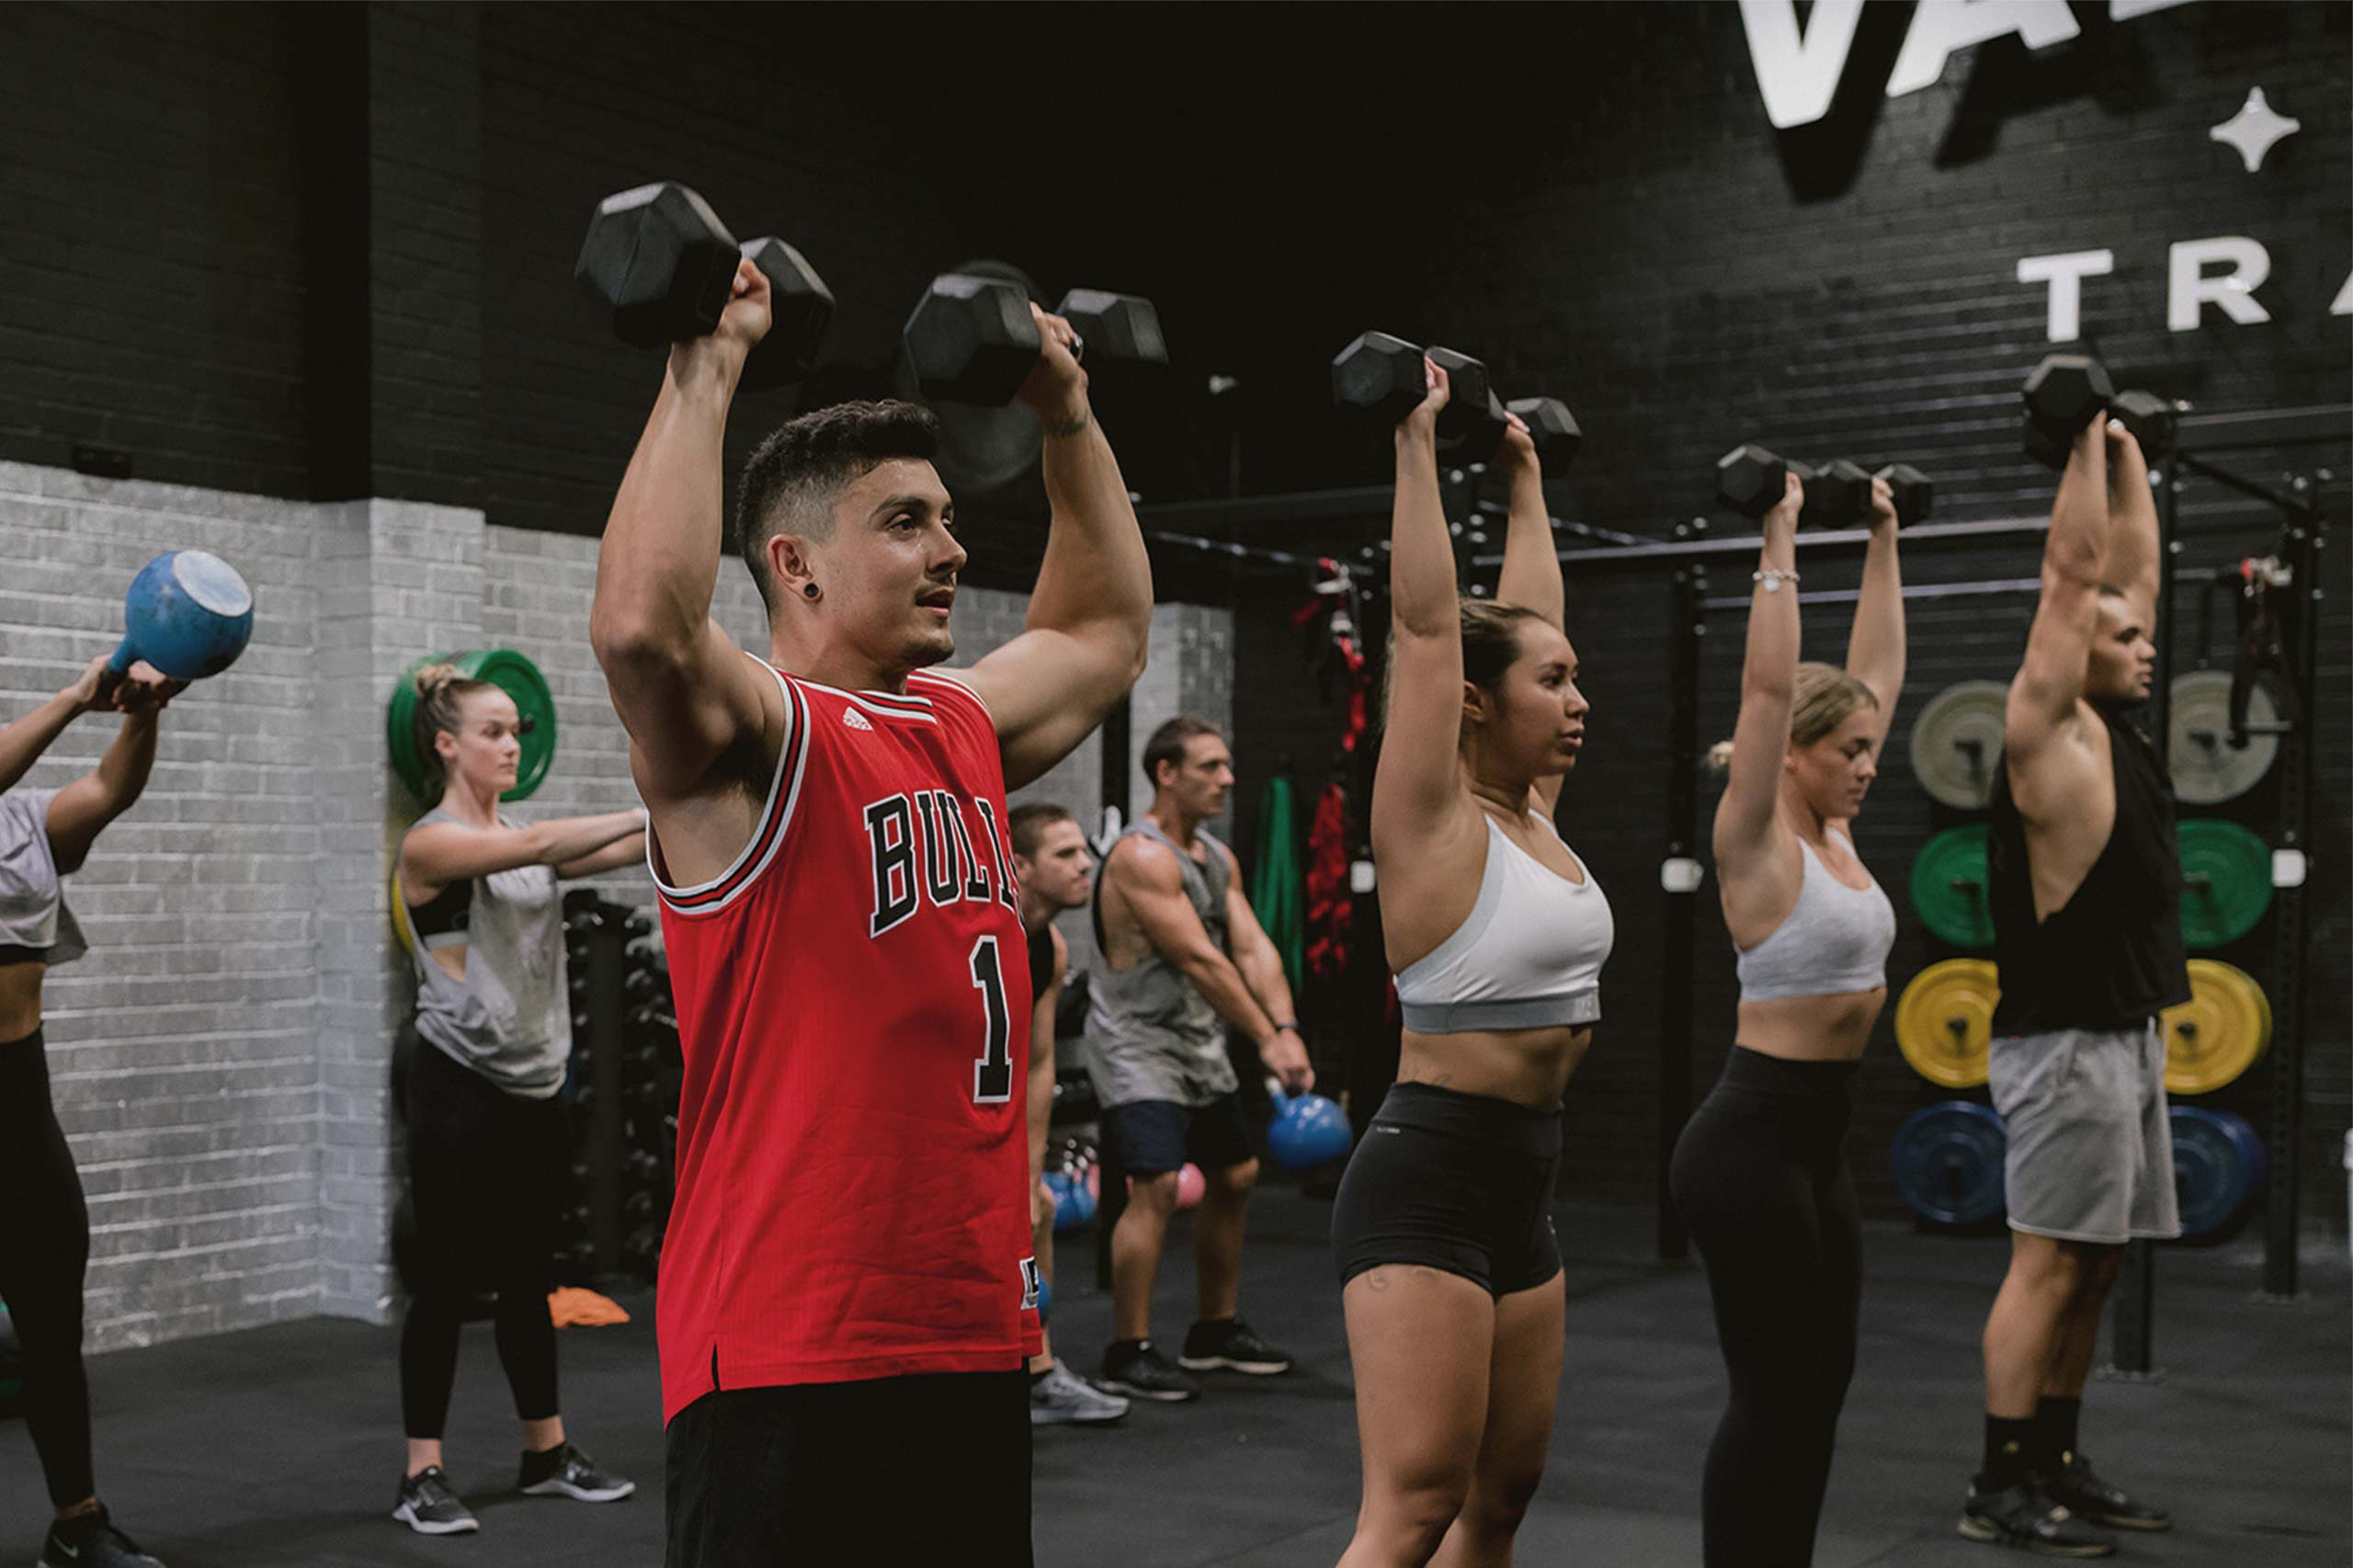 vale tudo super saturday session group workout with dumbbells